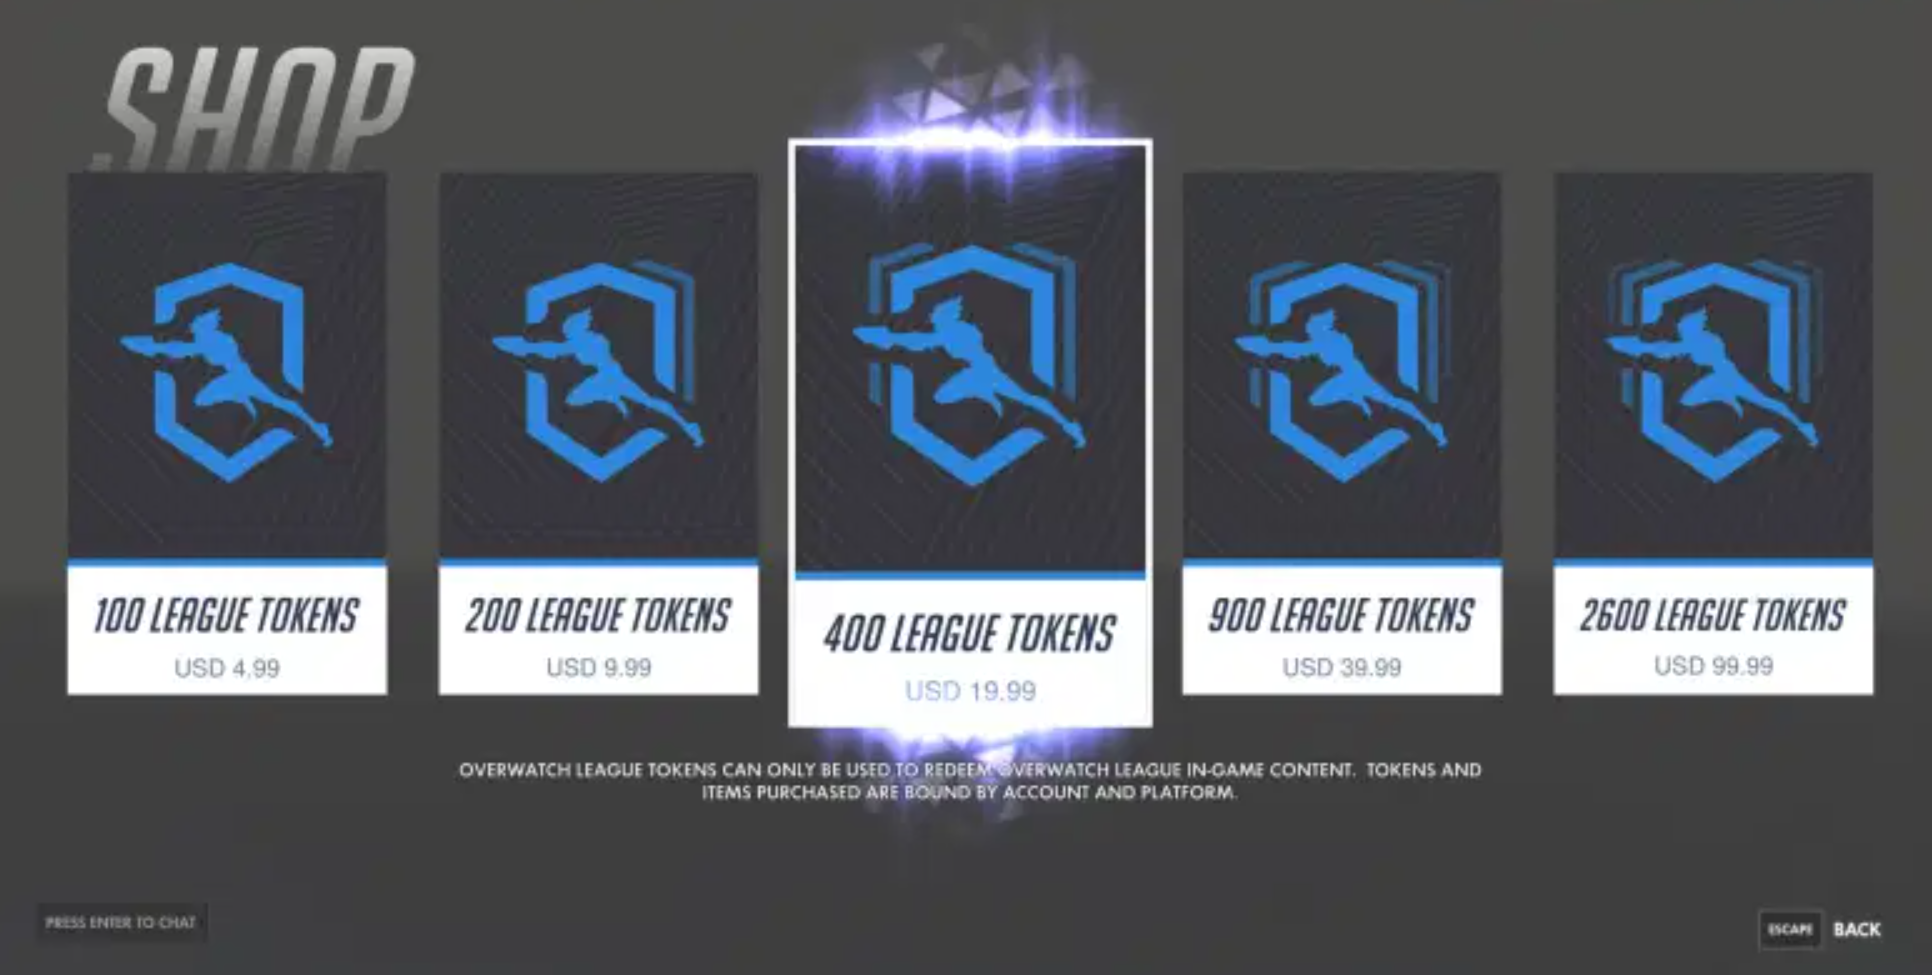 Overwatch league tokens